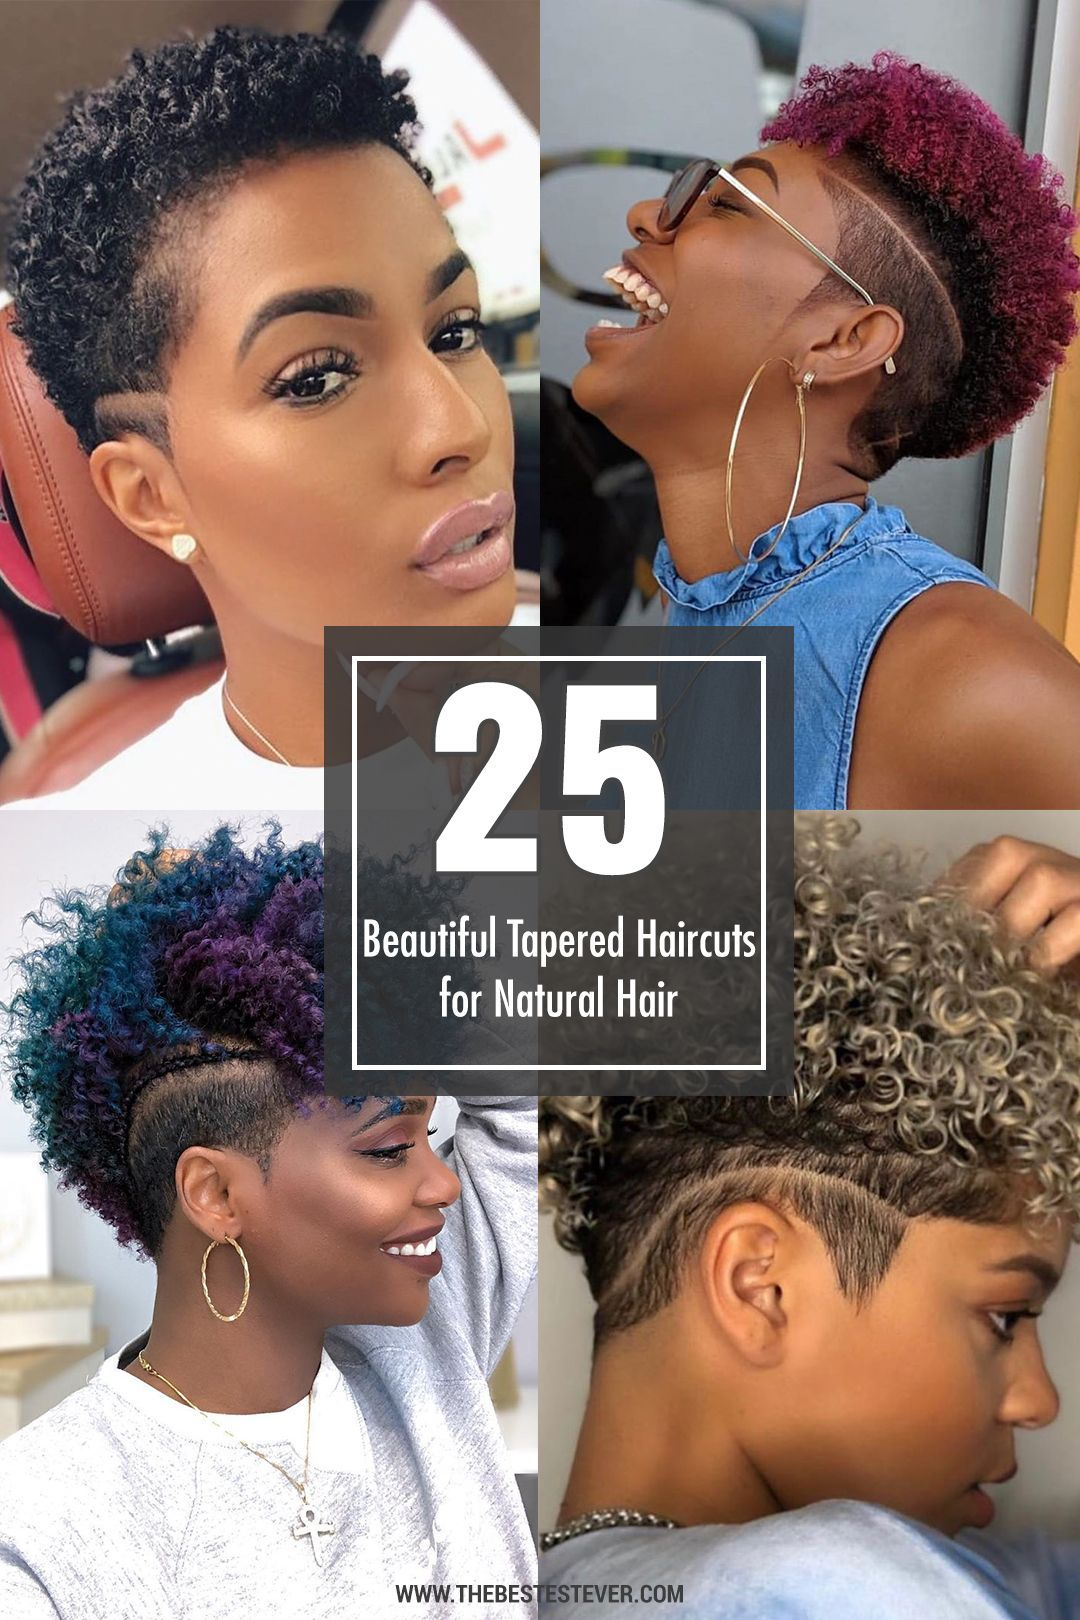 Pin On Tapered Hairstyles For Natural Hair